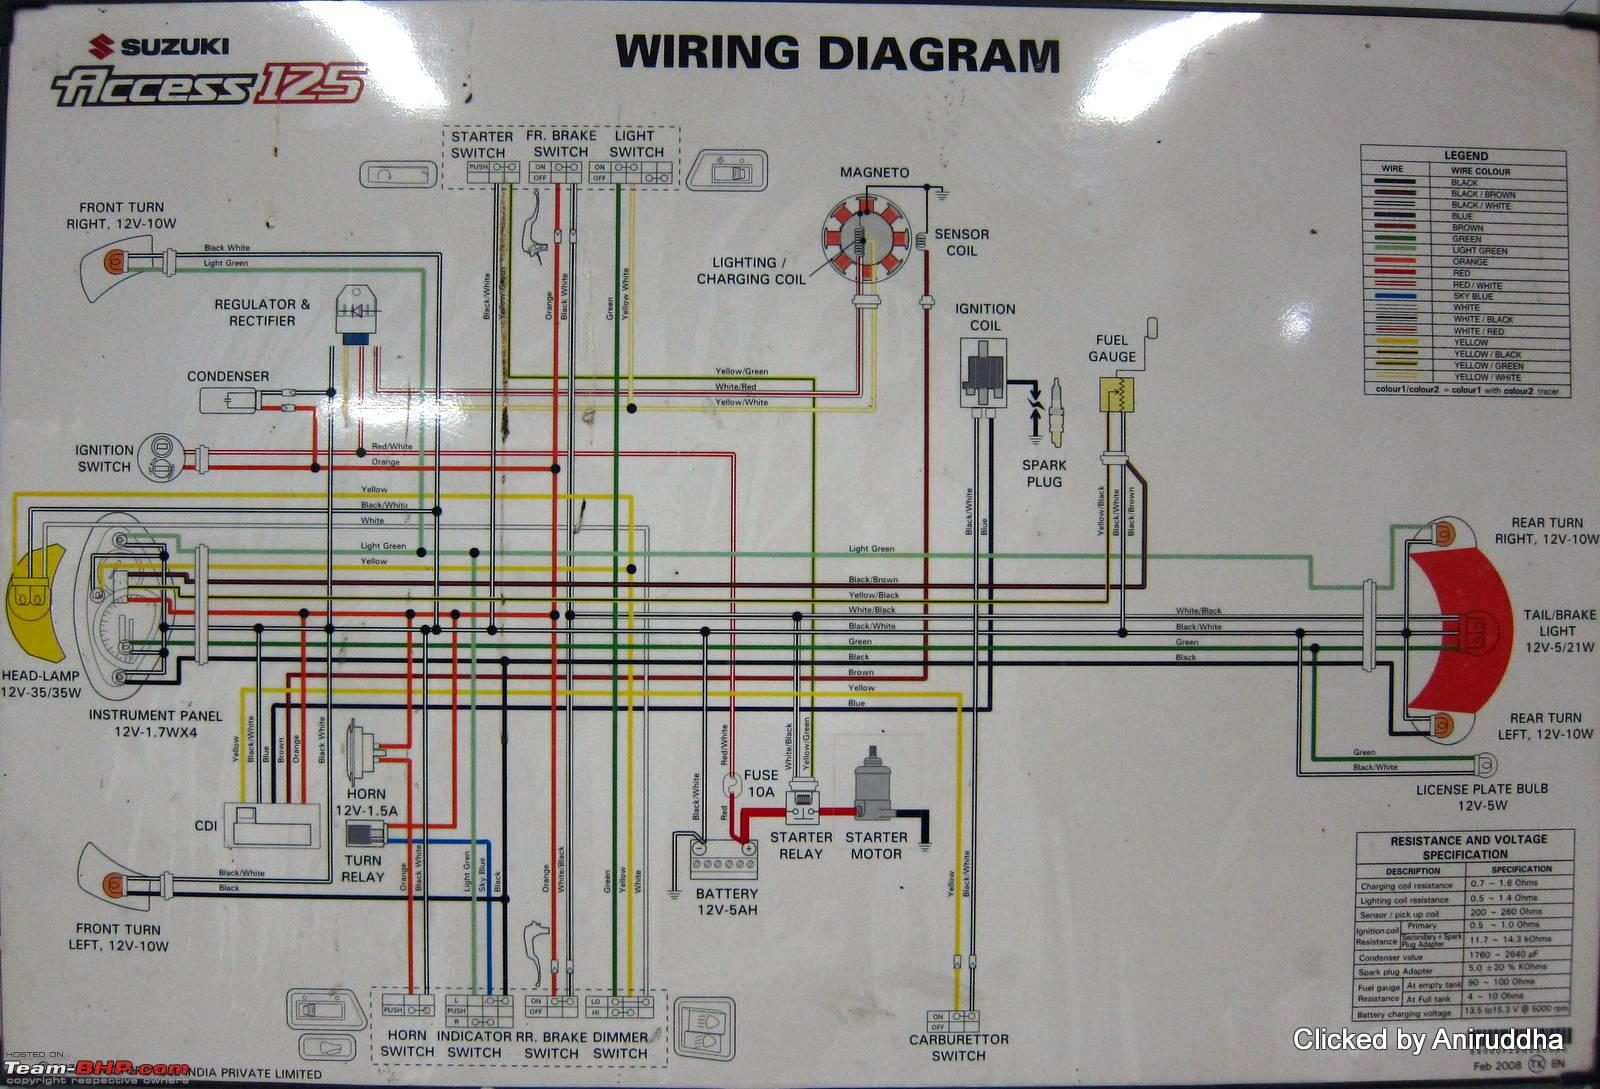 110 Cc Ignition Wiring Diagram Pdf Circuit Diagrams Of Indian Motorcycles And Scooters Team Bhp